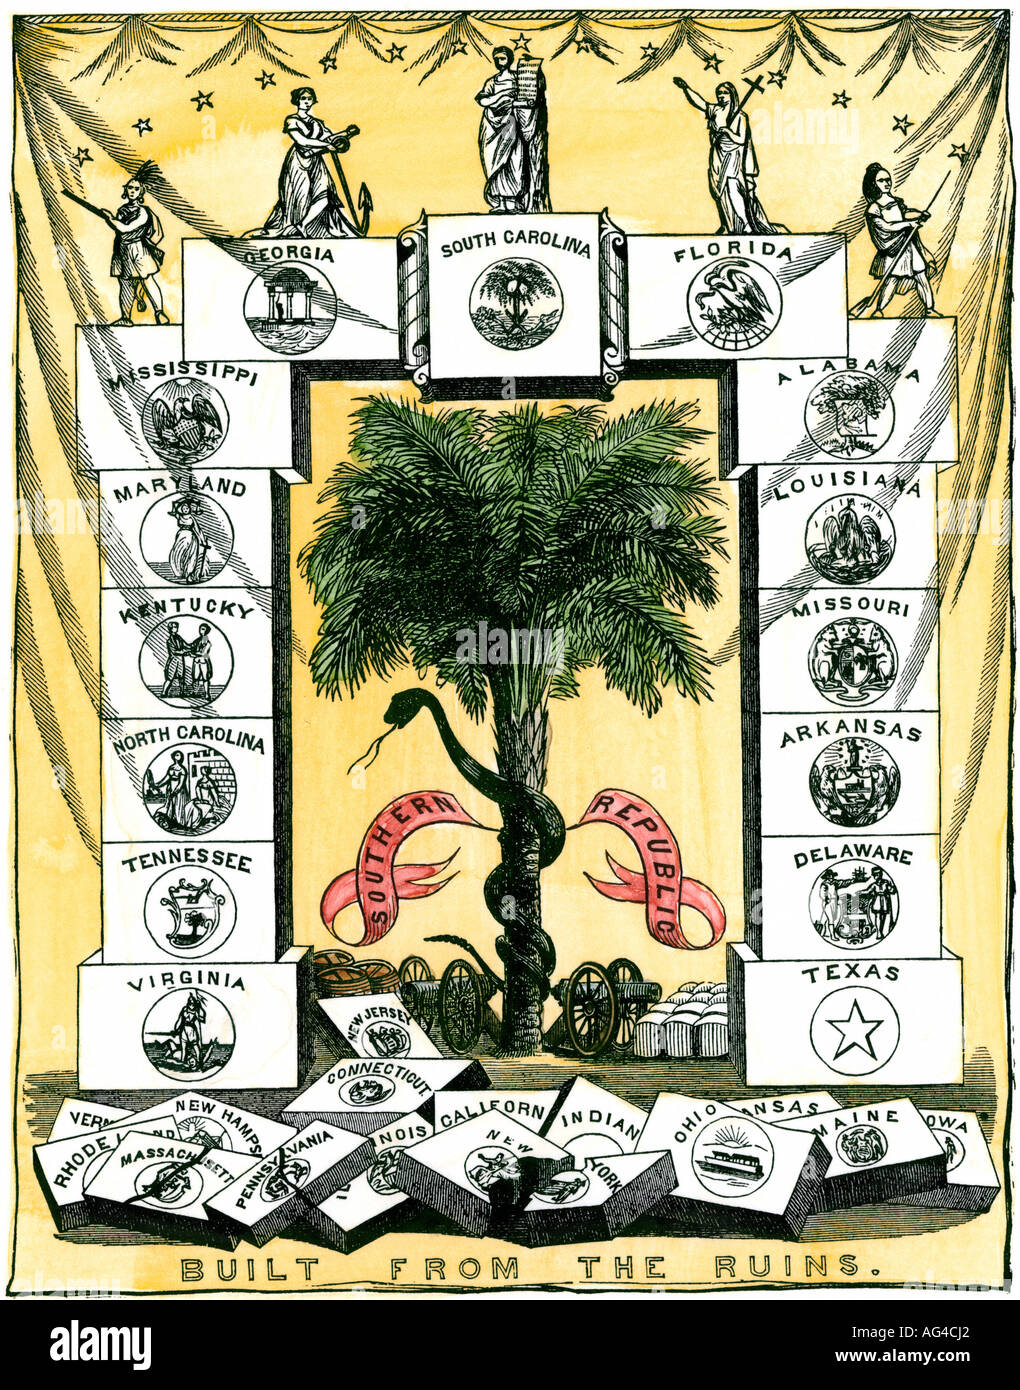 Banner of the Secession Convention in Charleston South Carolina precipitating the US Civil War 1860 and 1861. Hand-colored woodcut - Stock Image